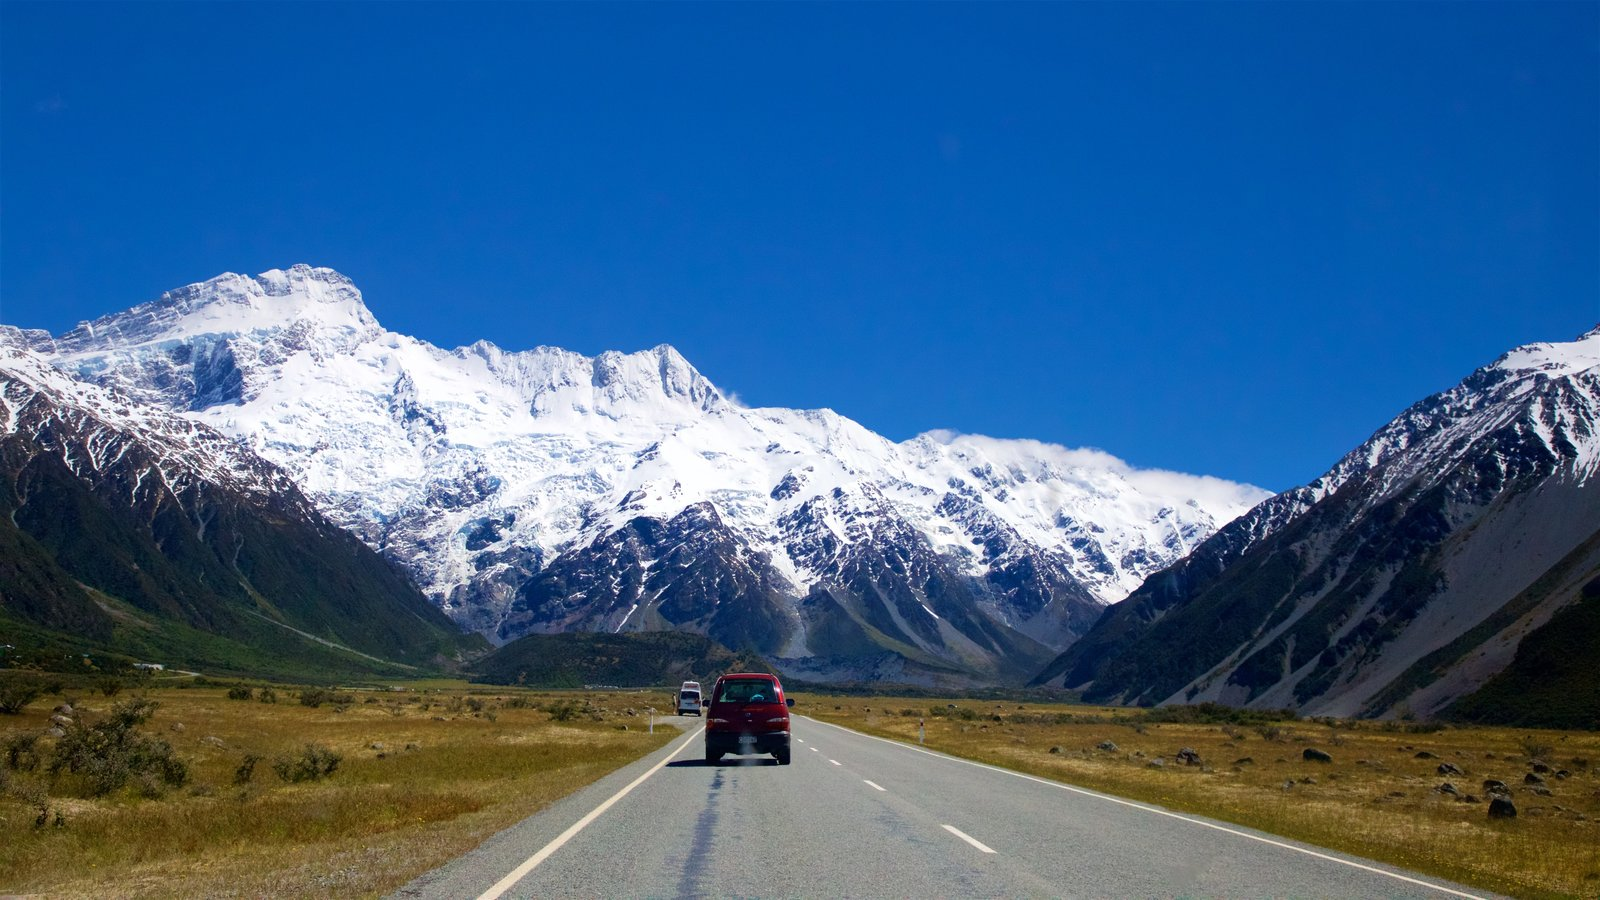 Mount Cook National Park which includes tranquil scenes, mountains and snow